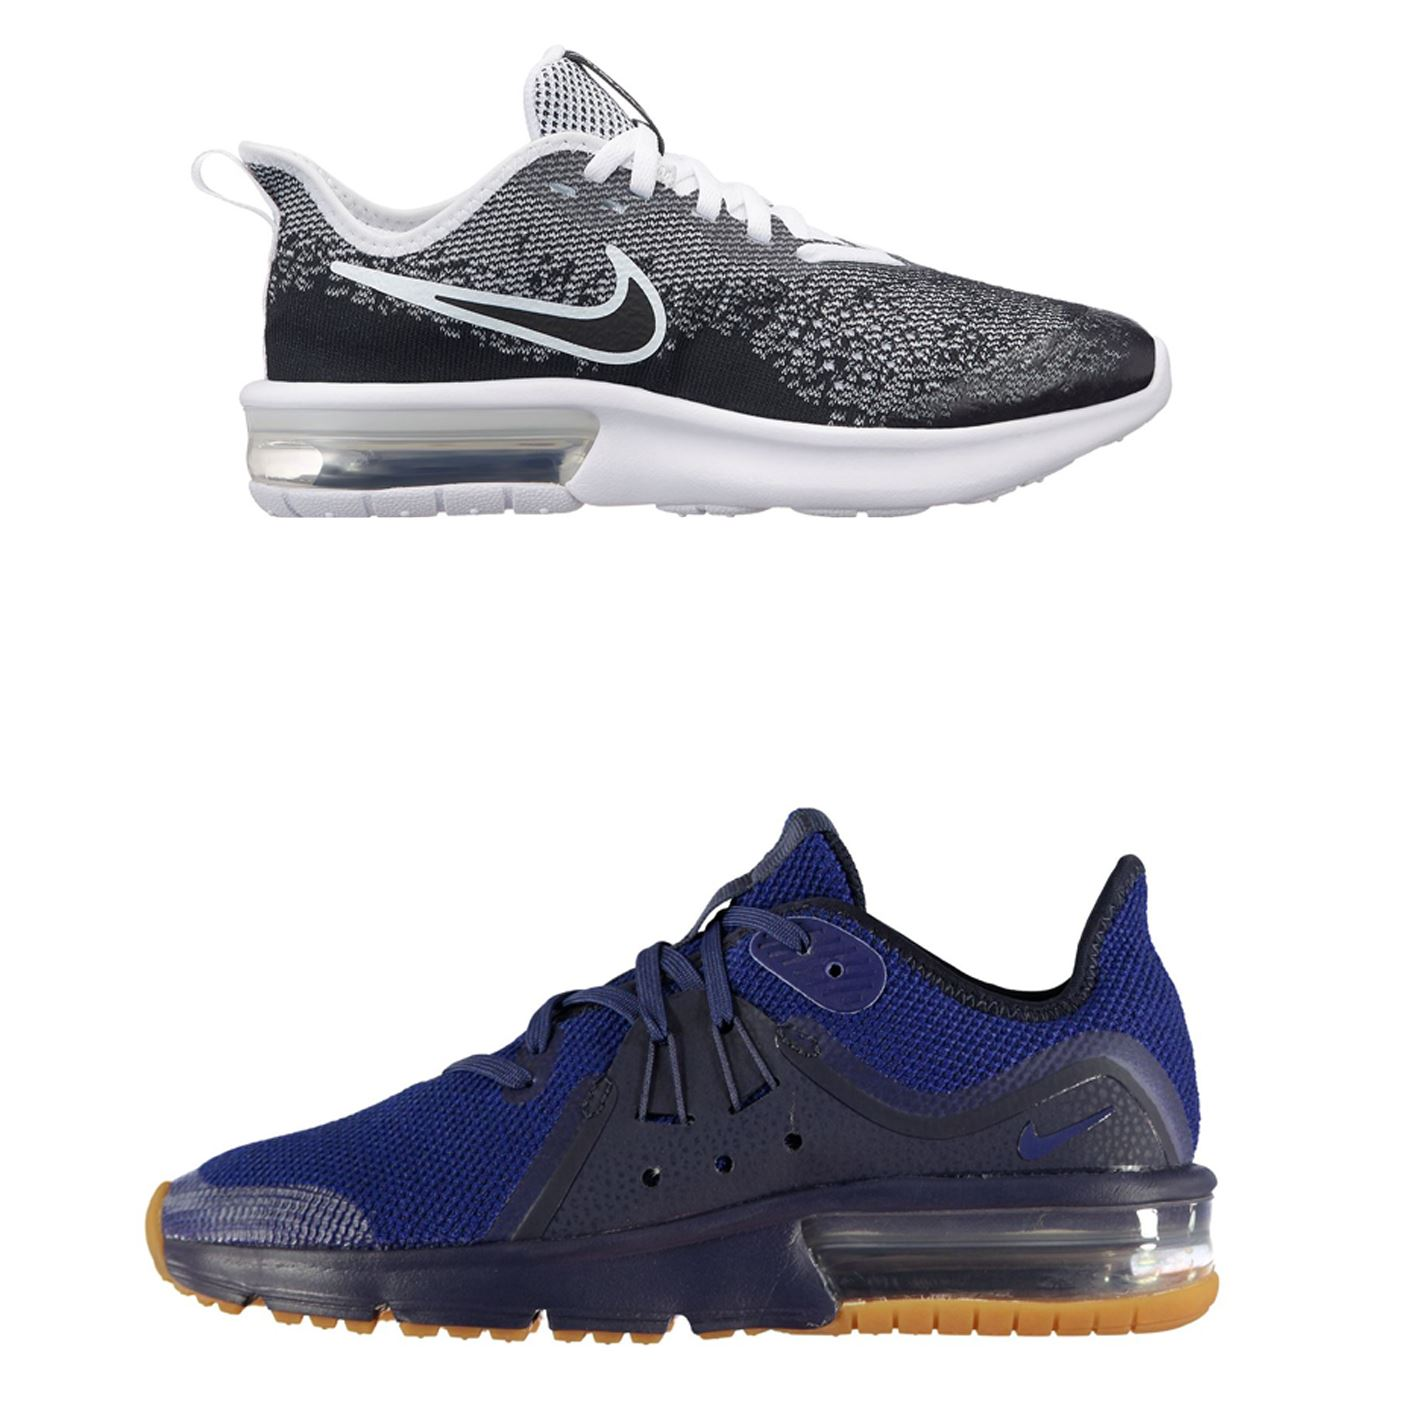 buy popular 21110 eac96 Details about Nike Air Max Sequent 4 Junior Boys Trainers Shoes Footwear